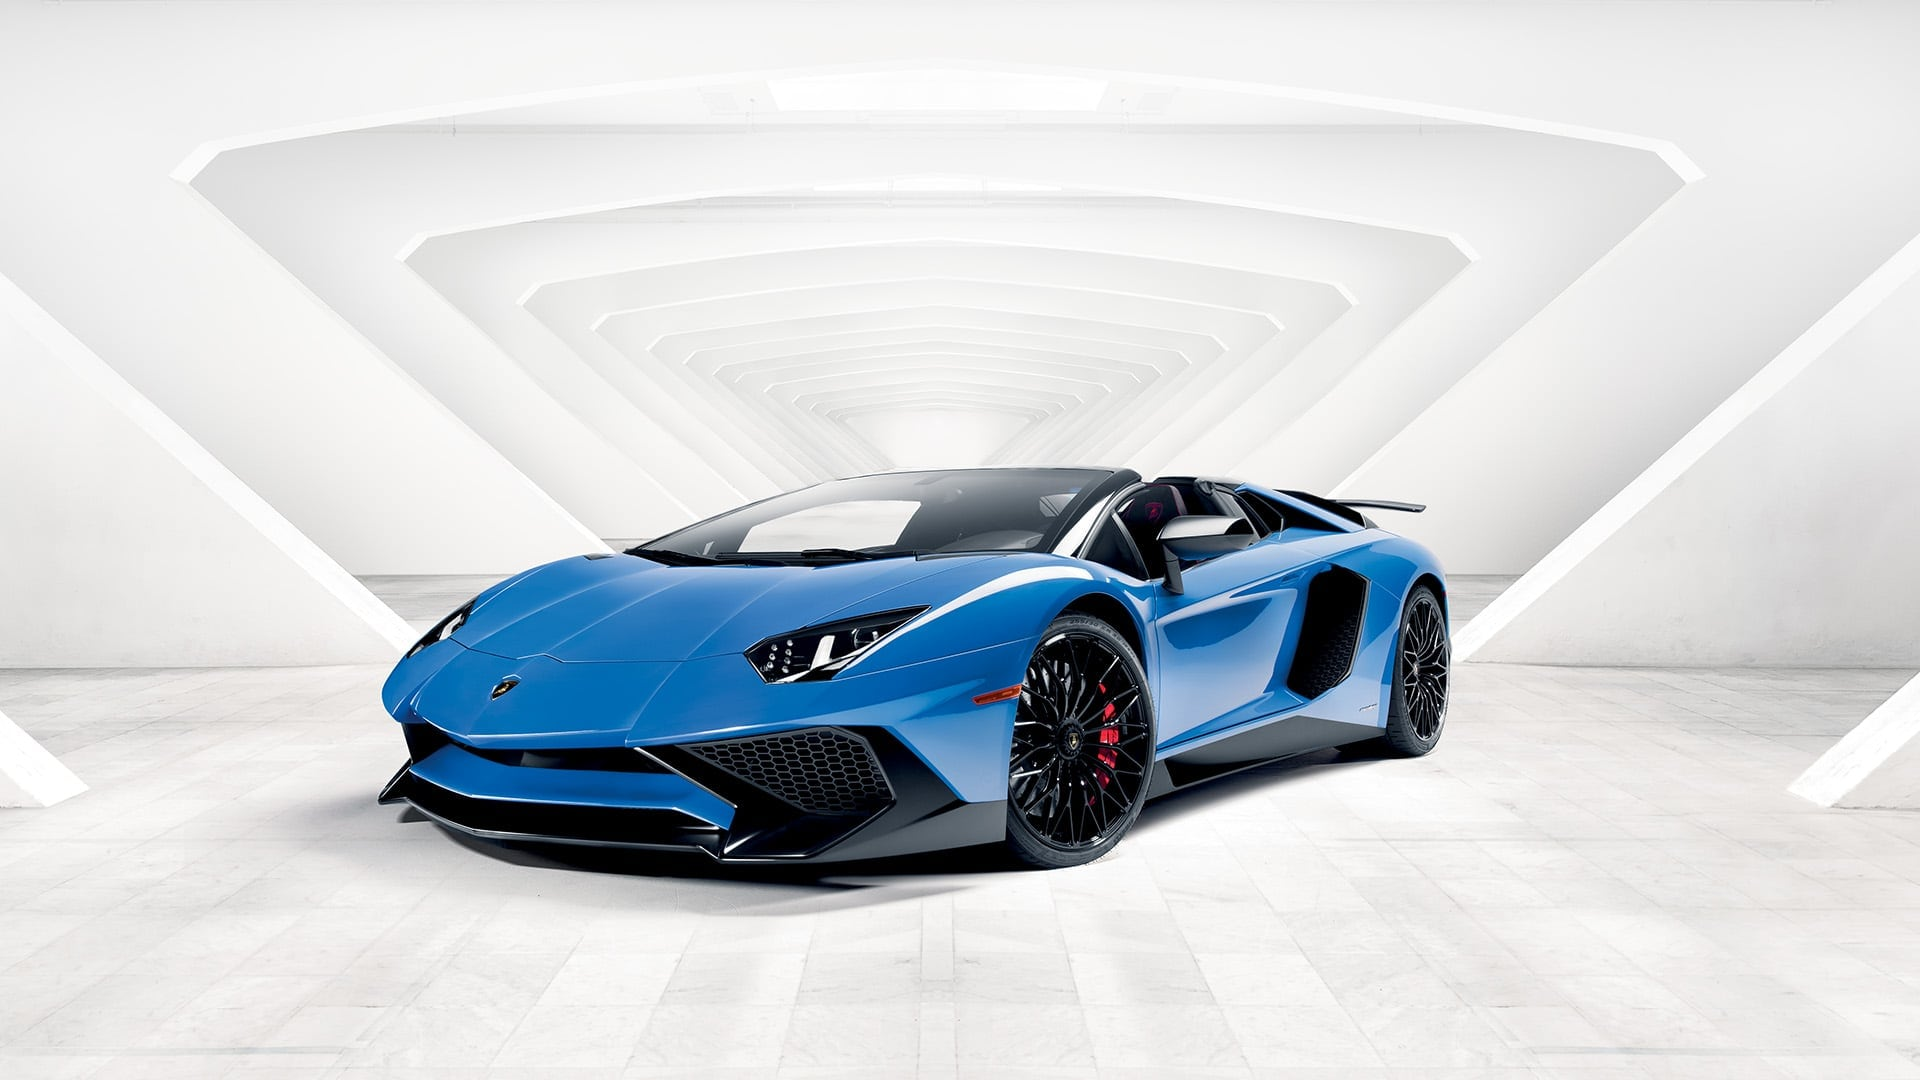 Lamborghini Aventador Superveloce Roadster Pictures Videos